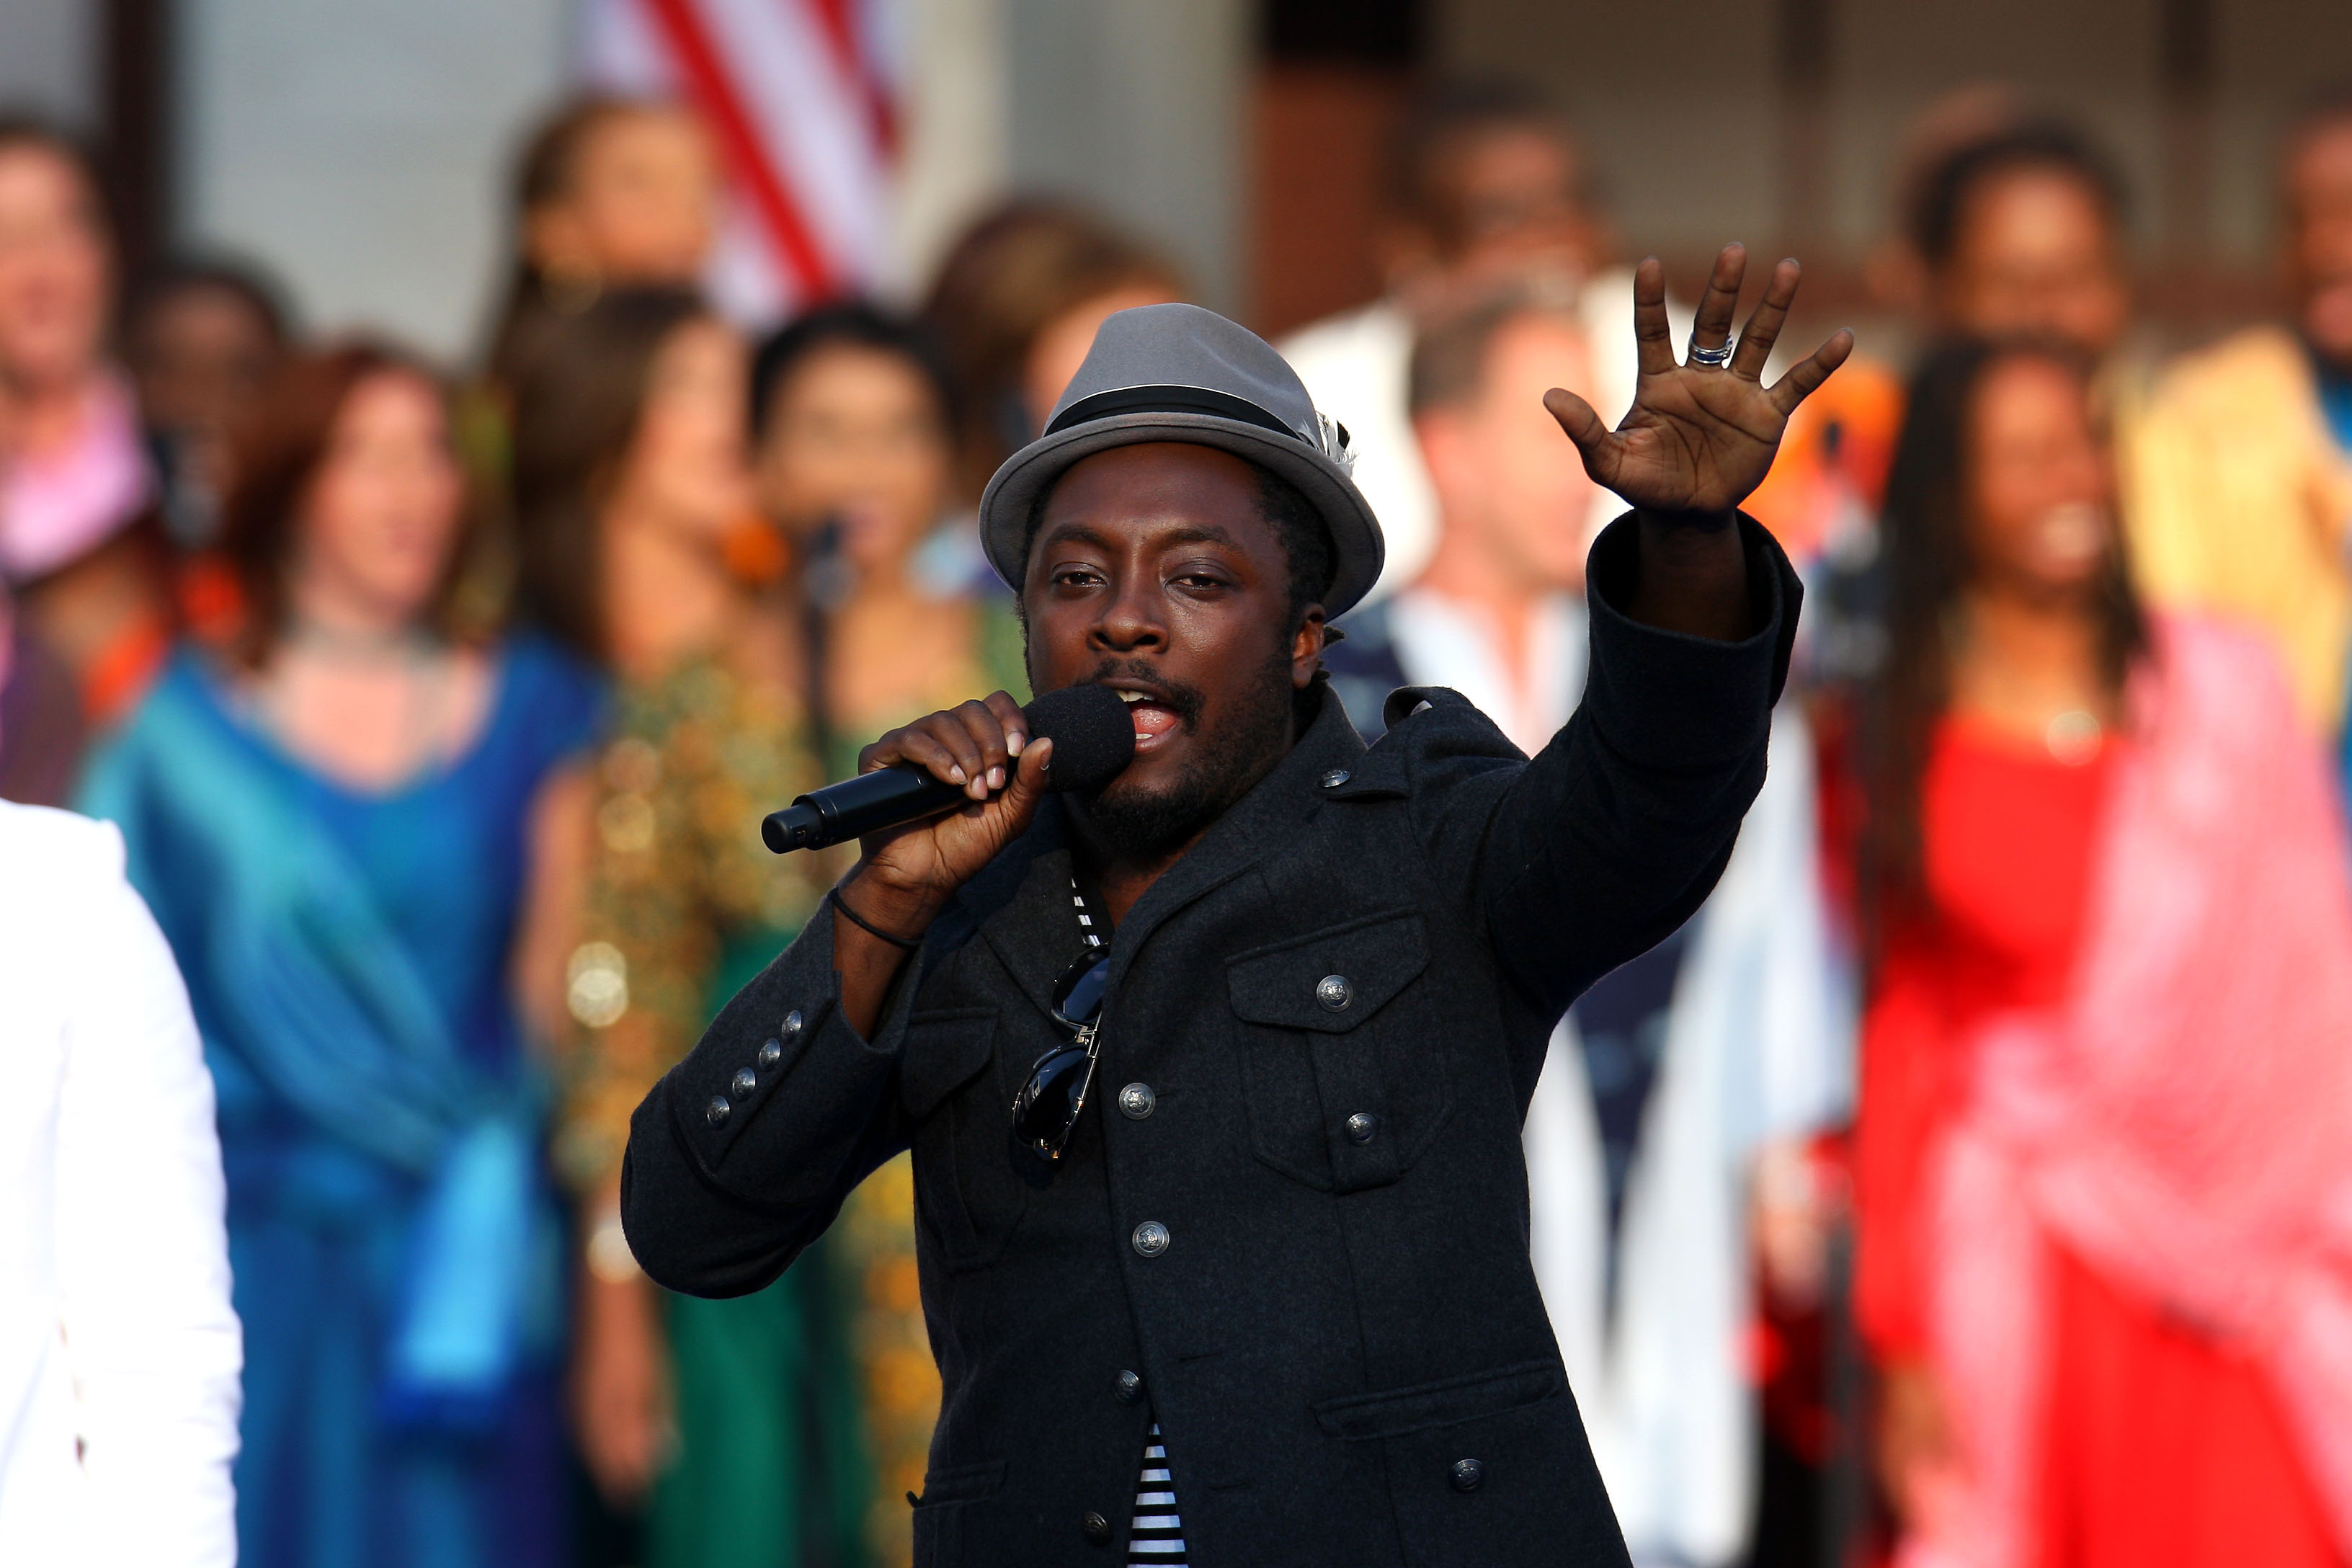 Recording artist will.i.am performs on day four of the Democratic National Convention (DNC) at Invesco Field at Mile High in Denver, Colorado on Aug. ...